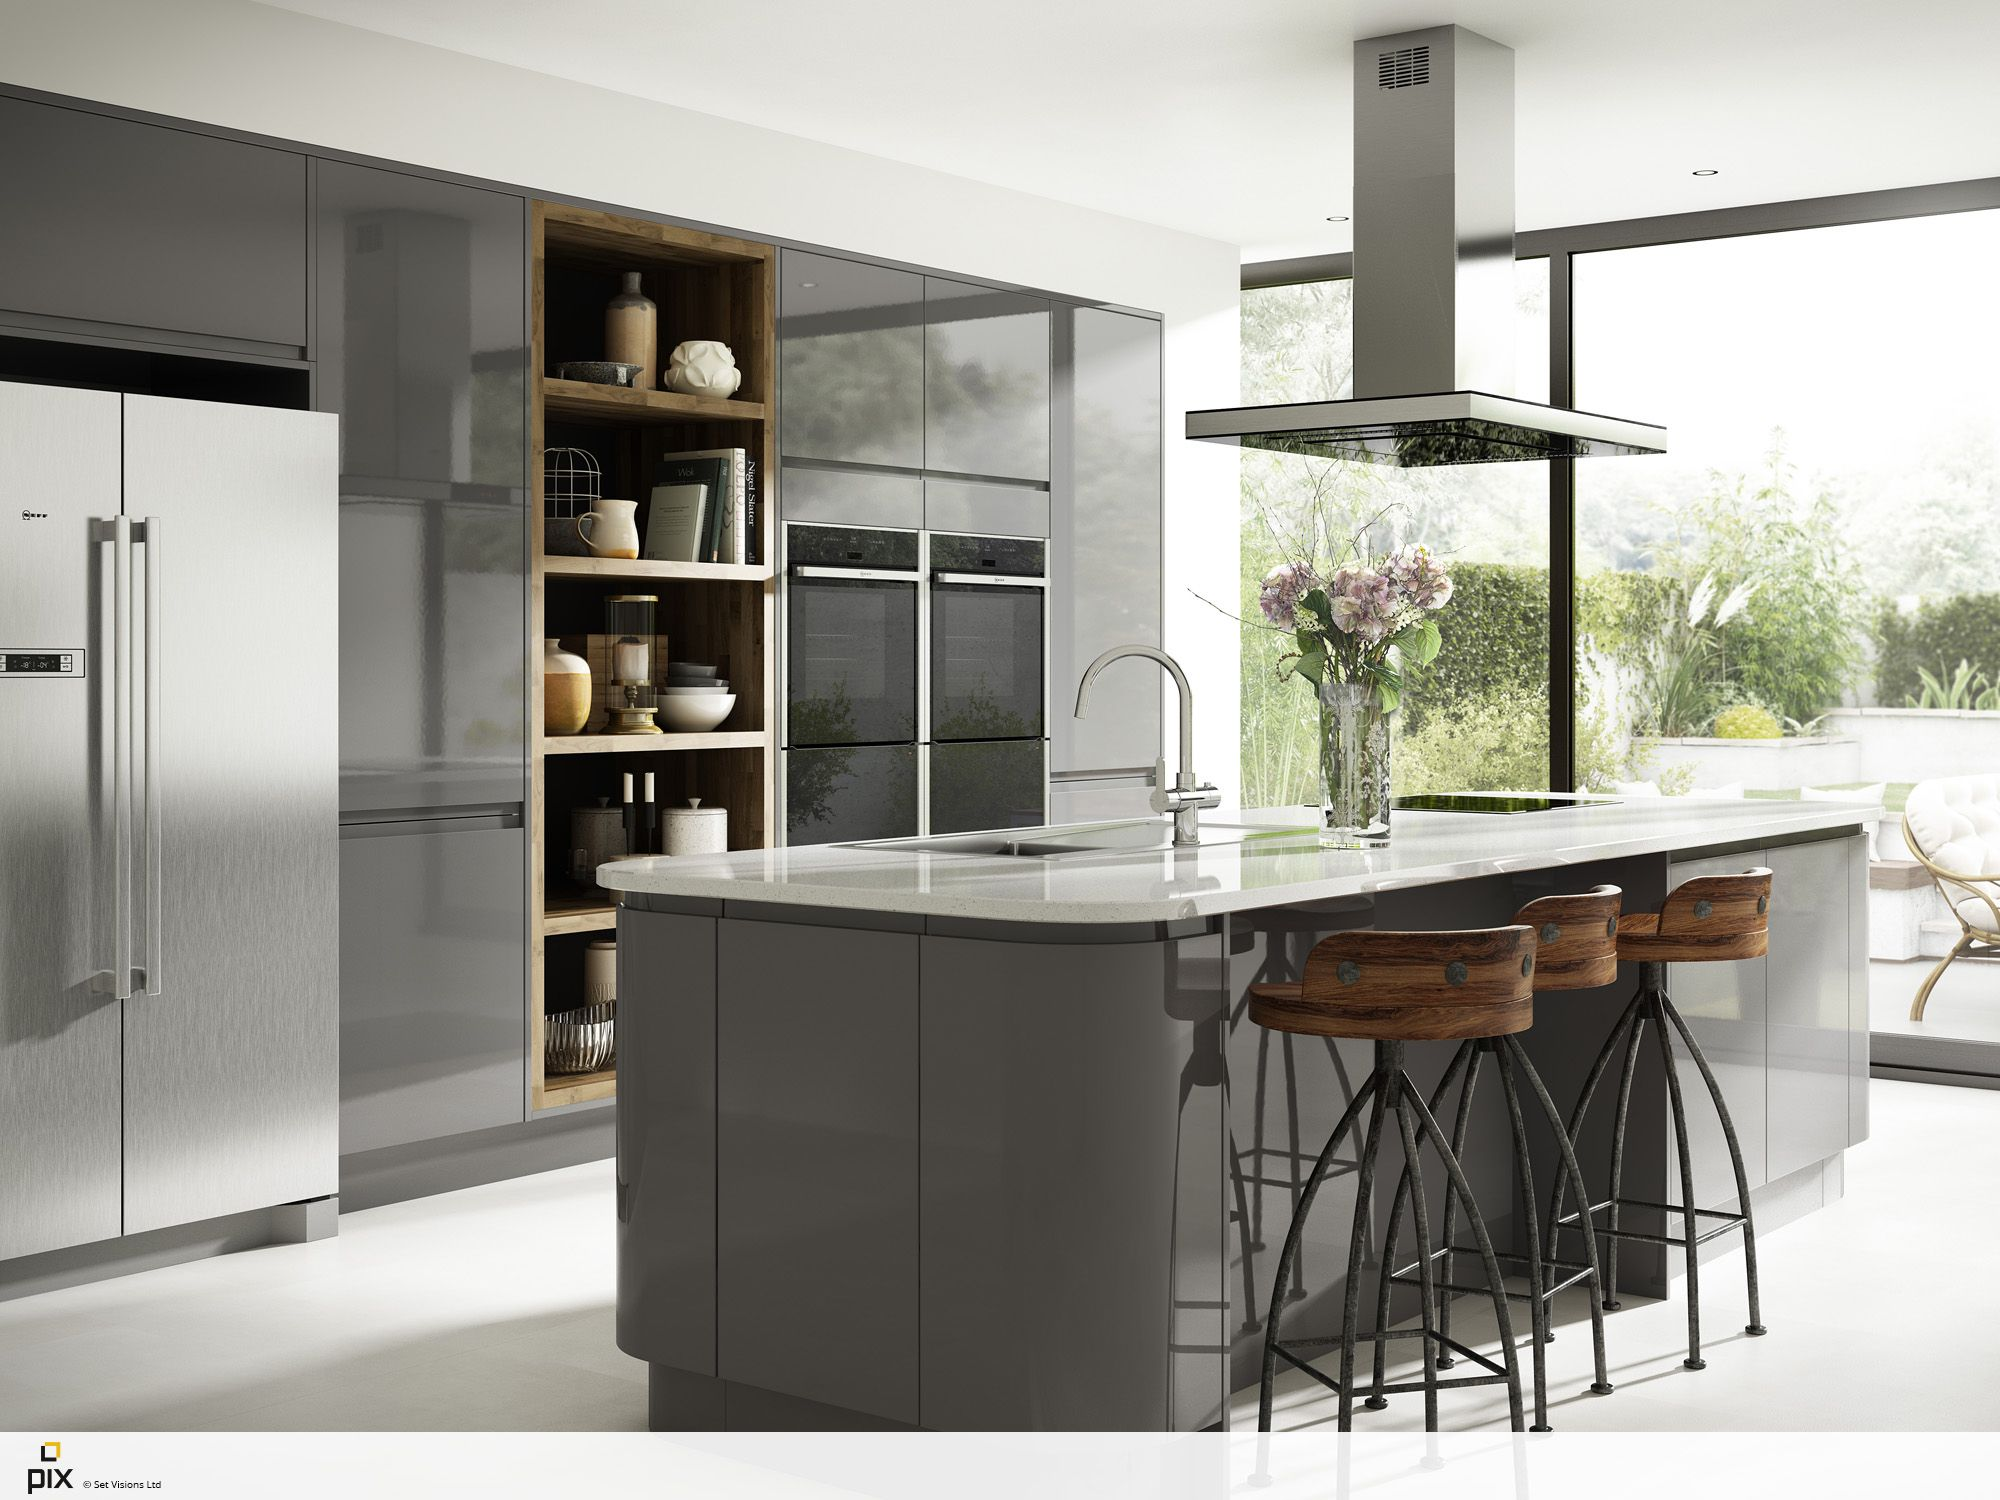 Pin By Dalia El Sayed On Small Kitchens In 2018 Pinterest Austin Flats Rene Black Hitam 37 Sculptural Curved Units With A Lacquered Finish And Ultra Modern Integrated Handles Truly Iconic Design Be The Envy Of Your Friends Holborn